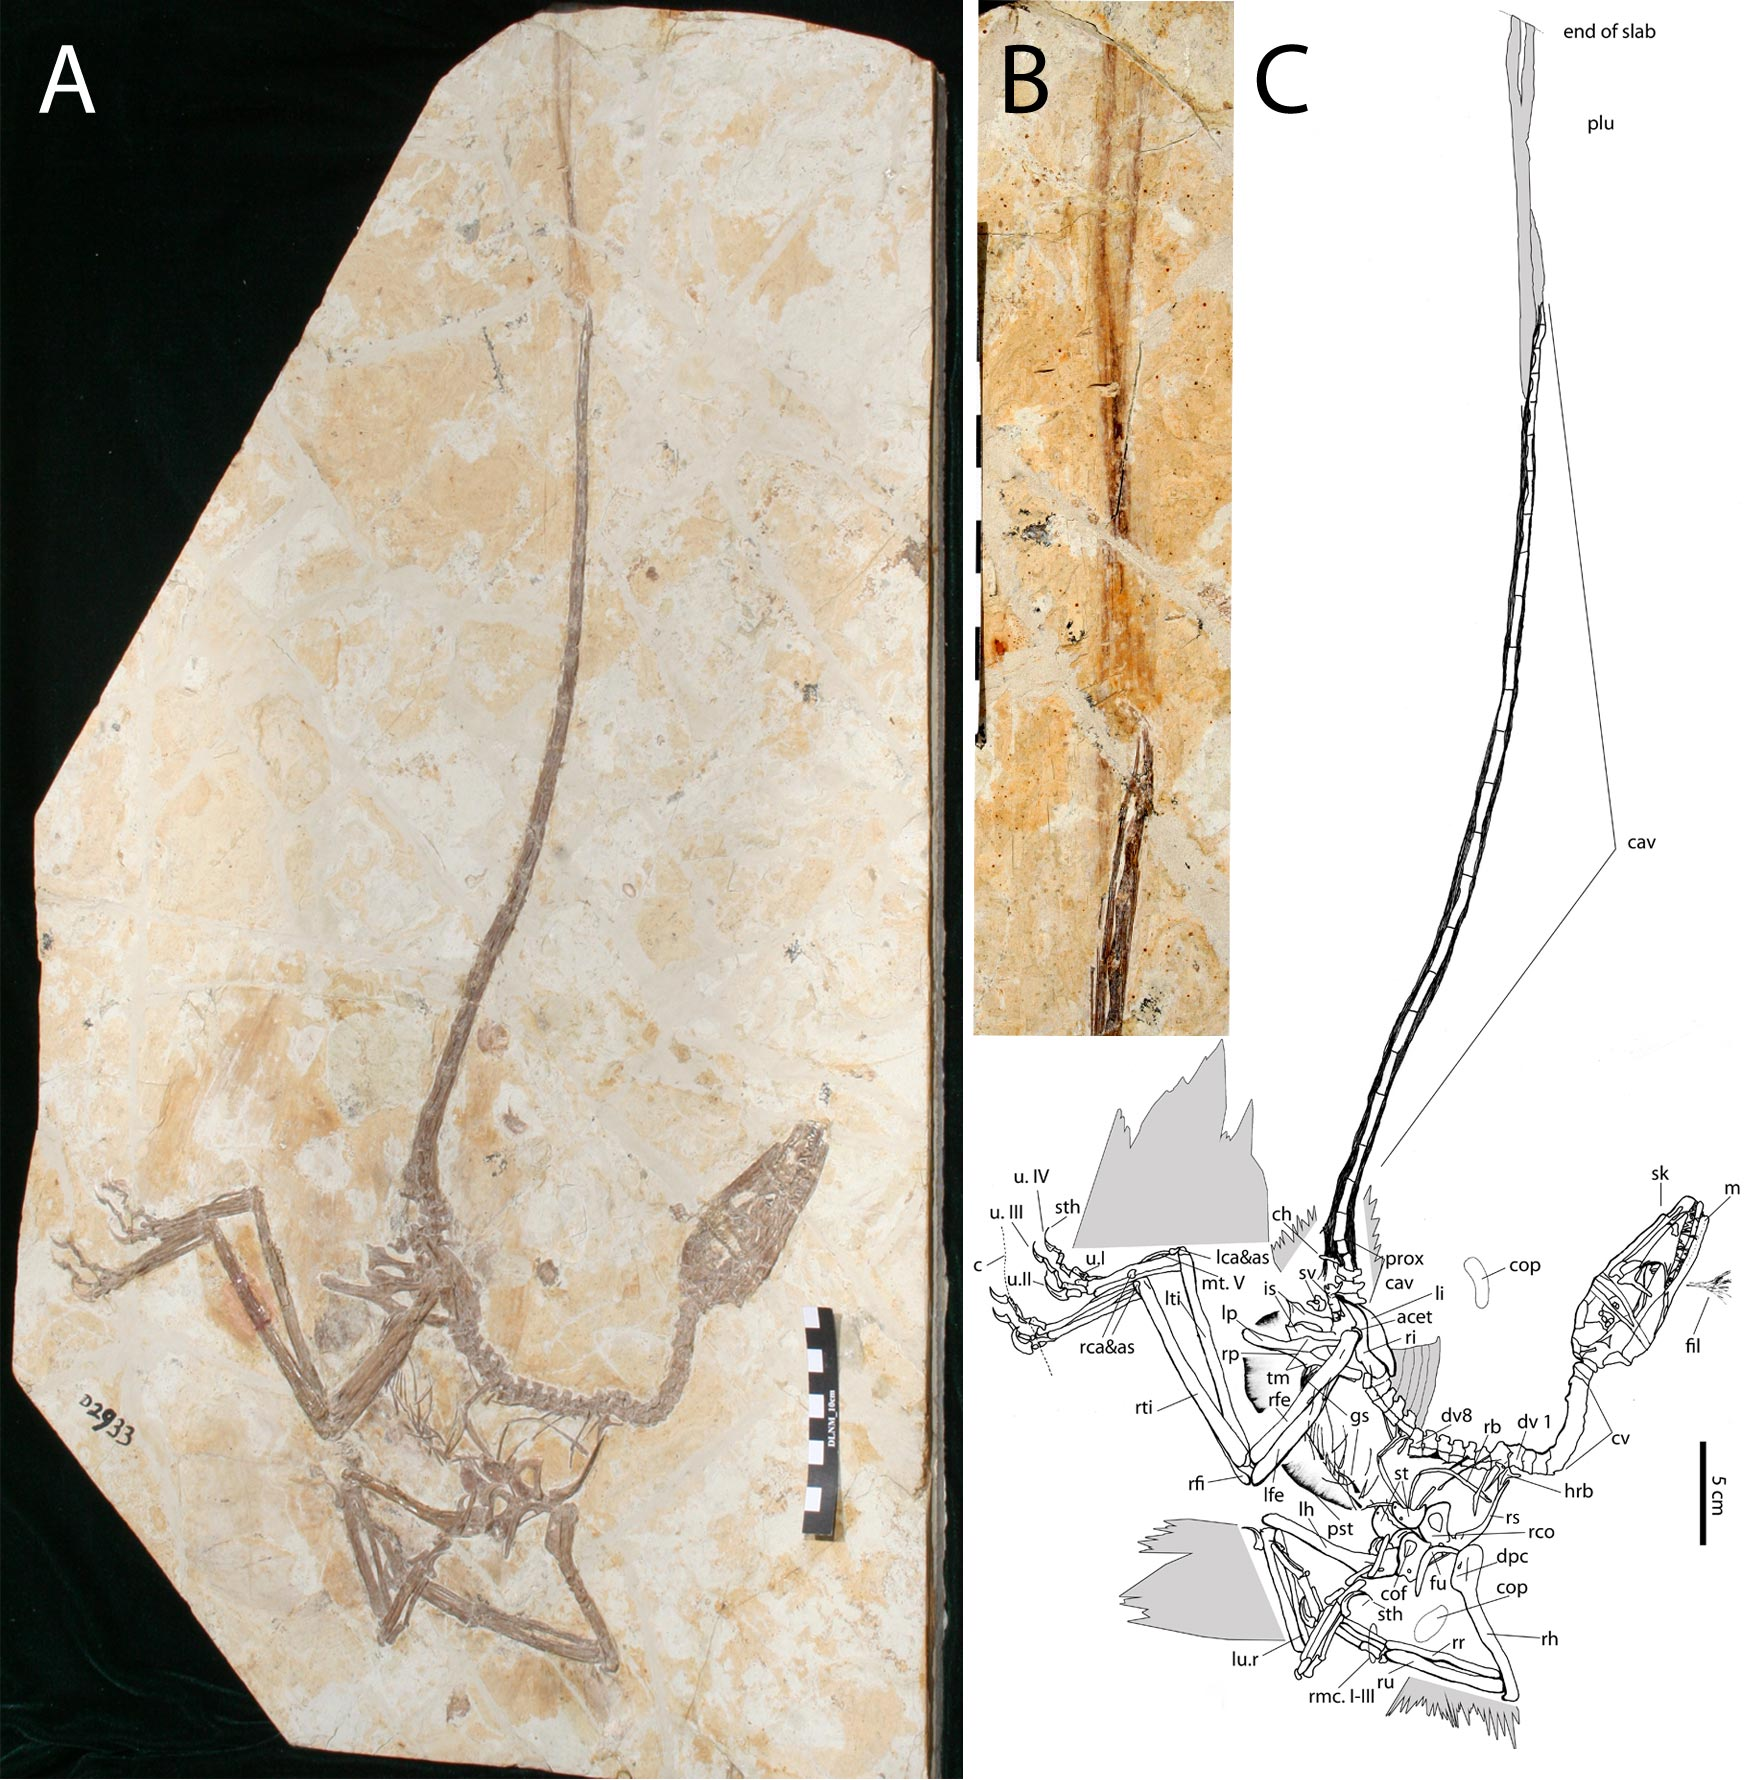 Newly identified dinosaur specimen sheds light on their link with birds